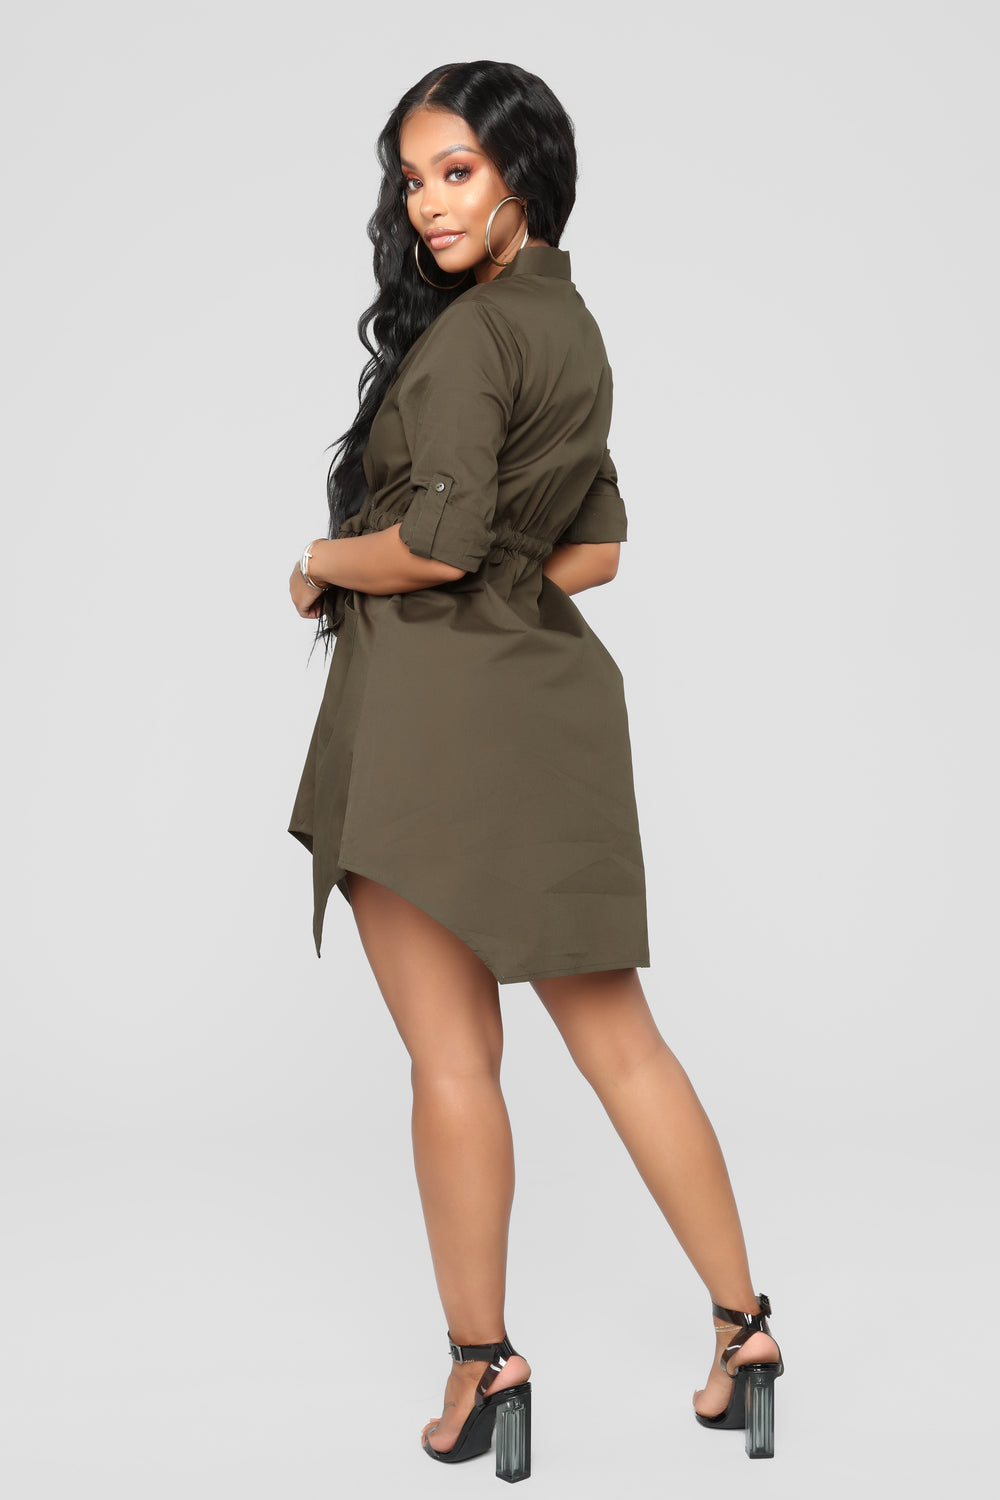 Work It Girl Dress - Olive